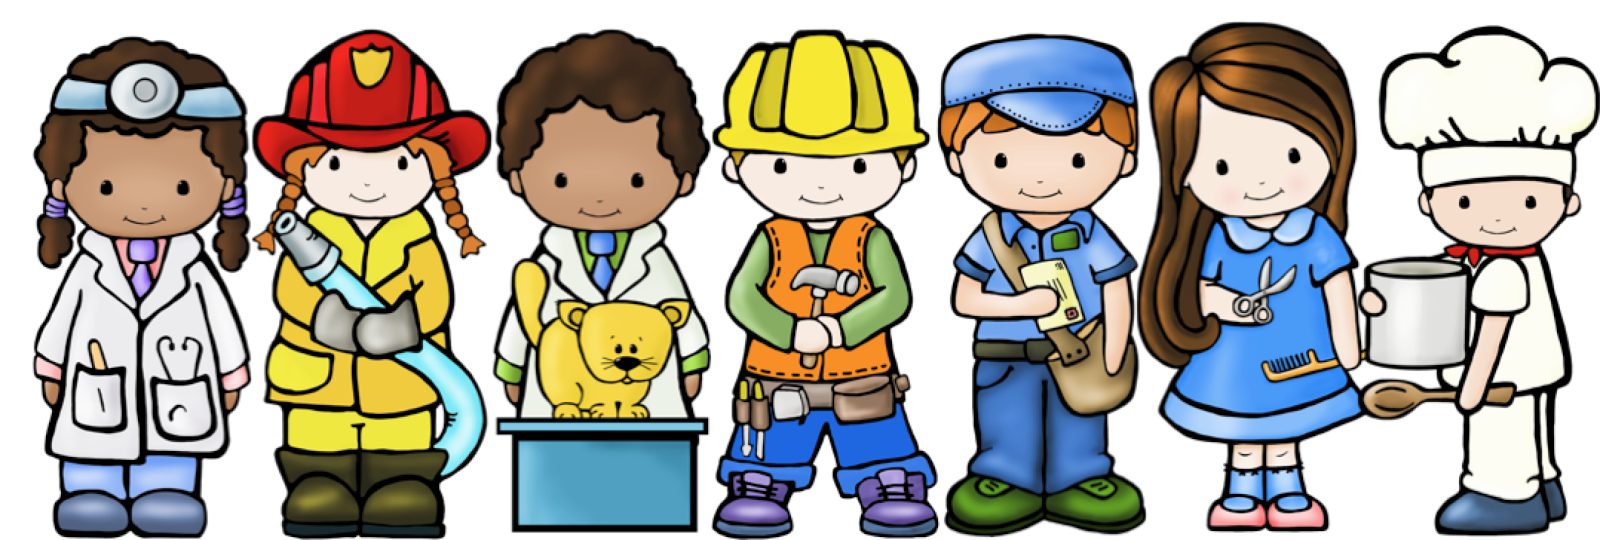 Community Helpers Clipart & Community Helpers Clip Art Images.